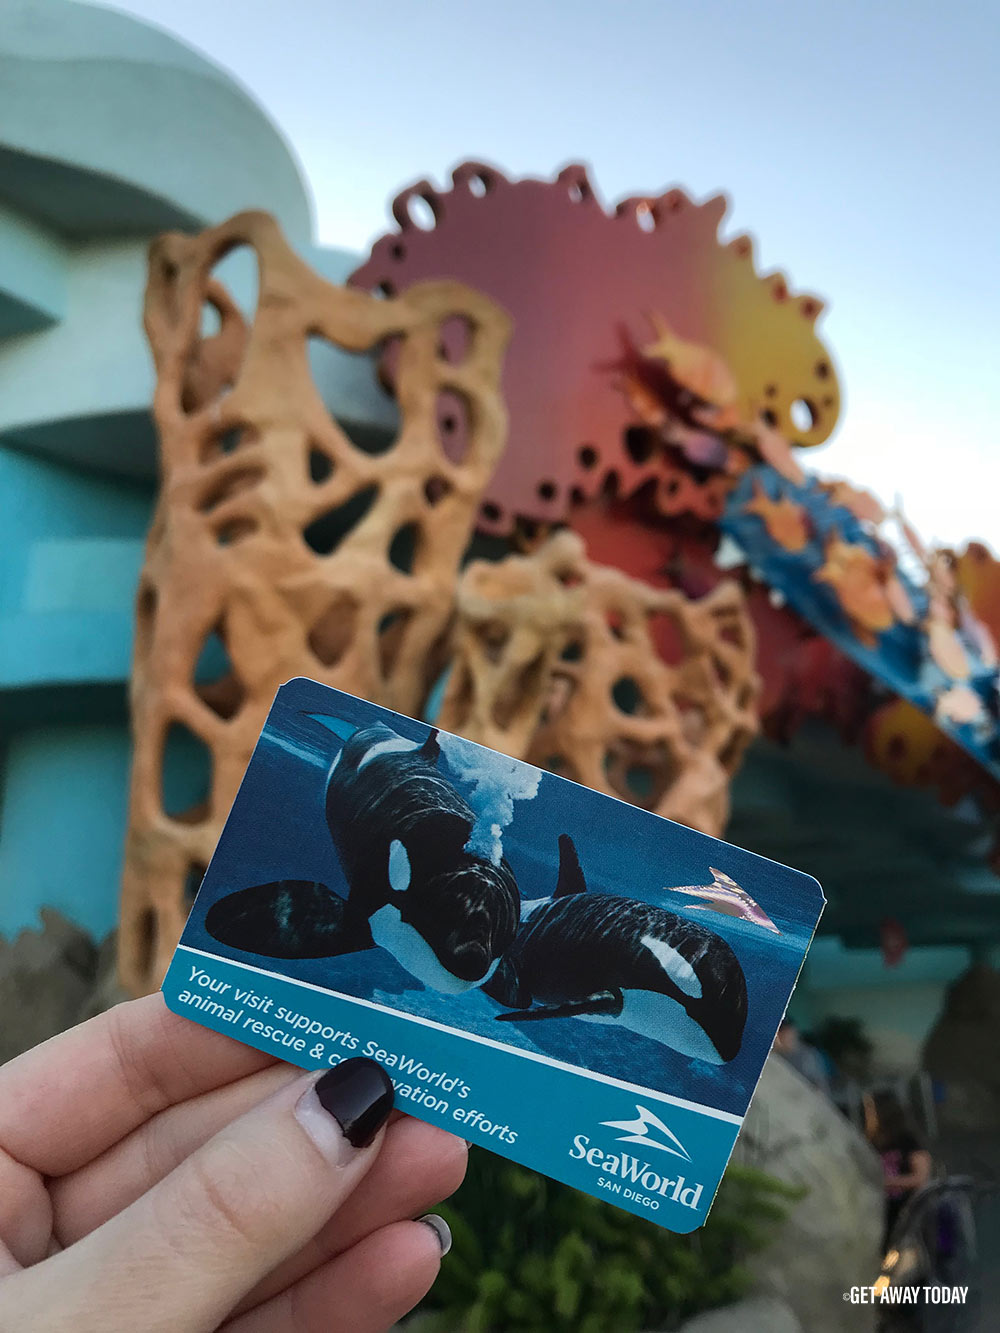 How To Save At Seaworld San Diego